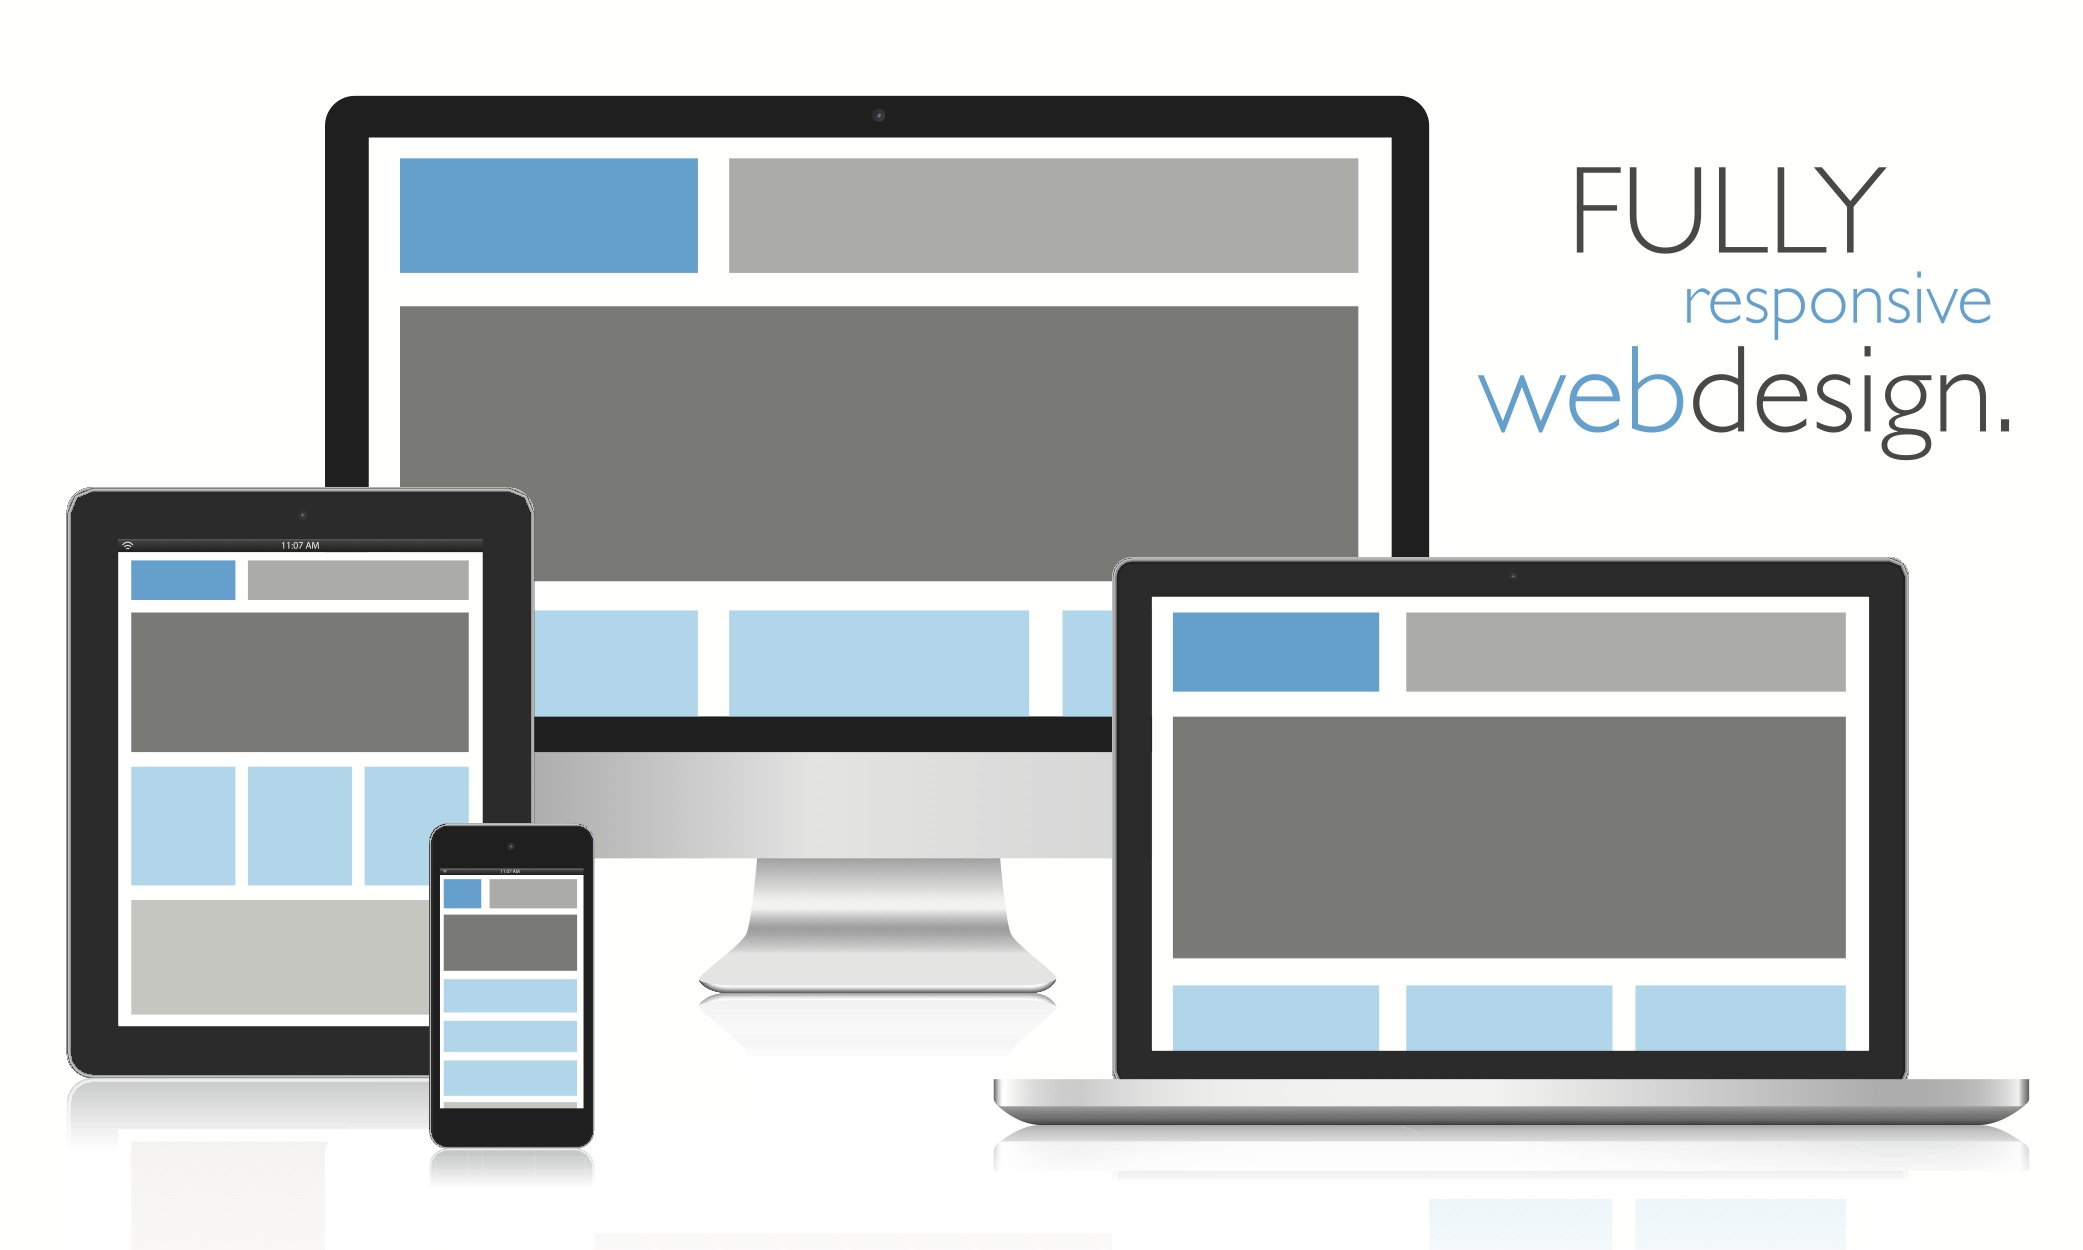 What is responsive web design - Responsive Web Design